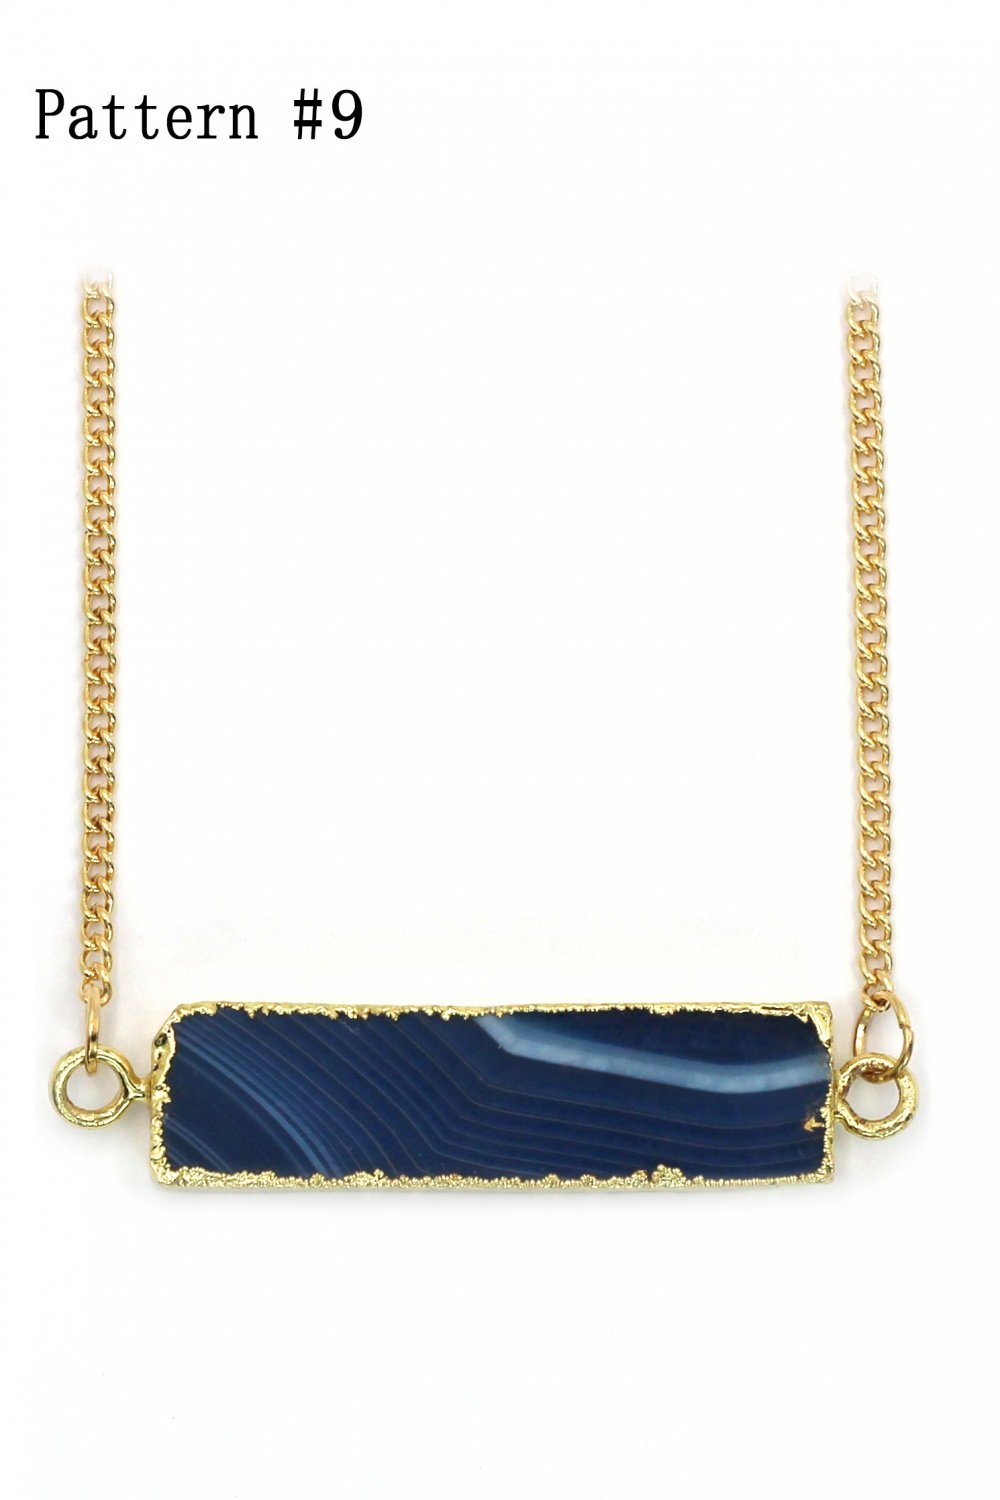 Fashion natural stone golden necklace Pattern #9